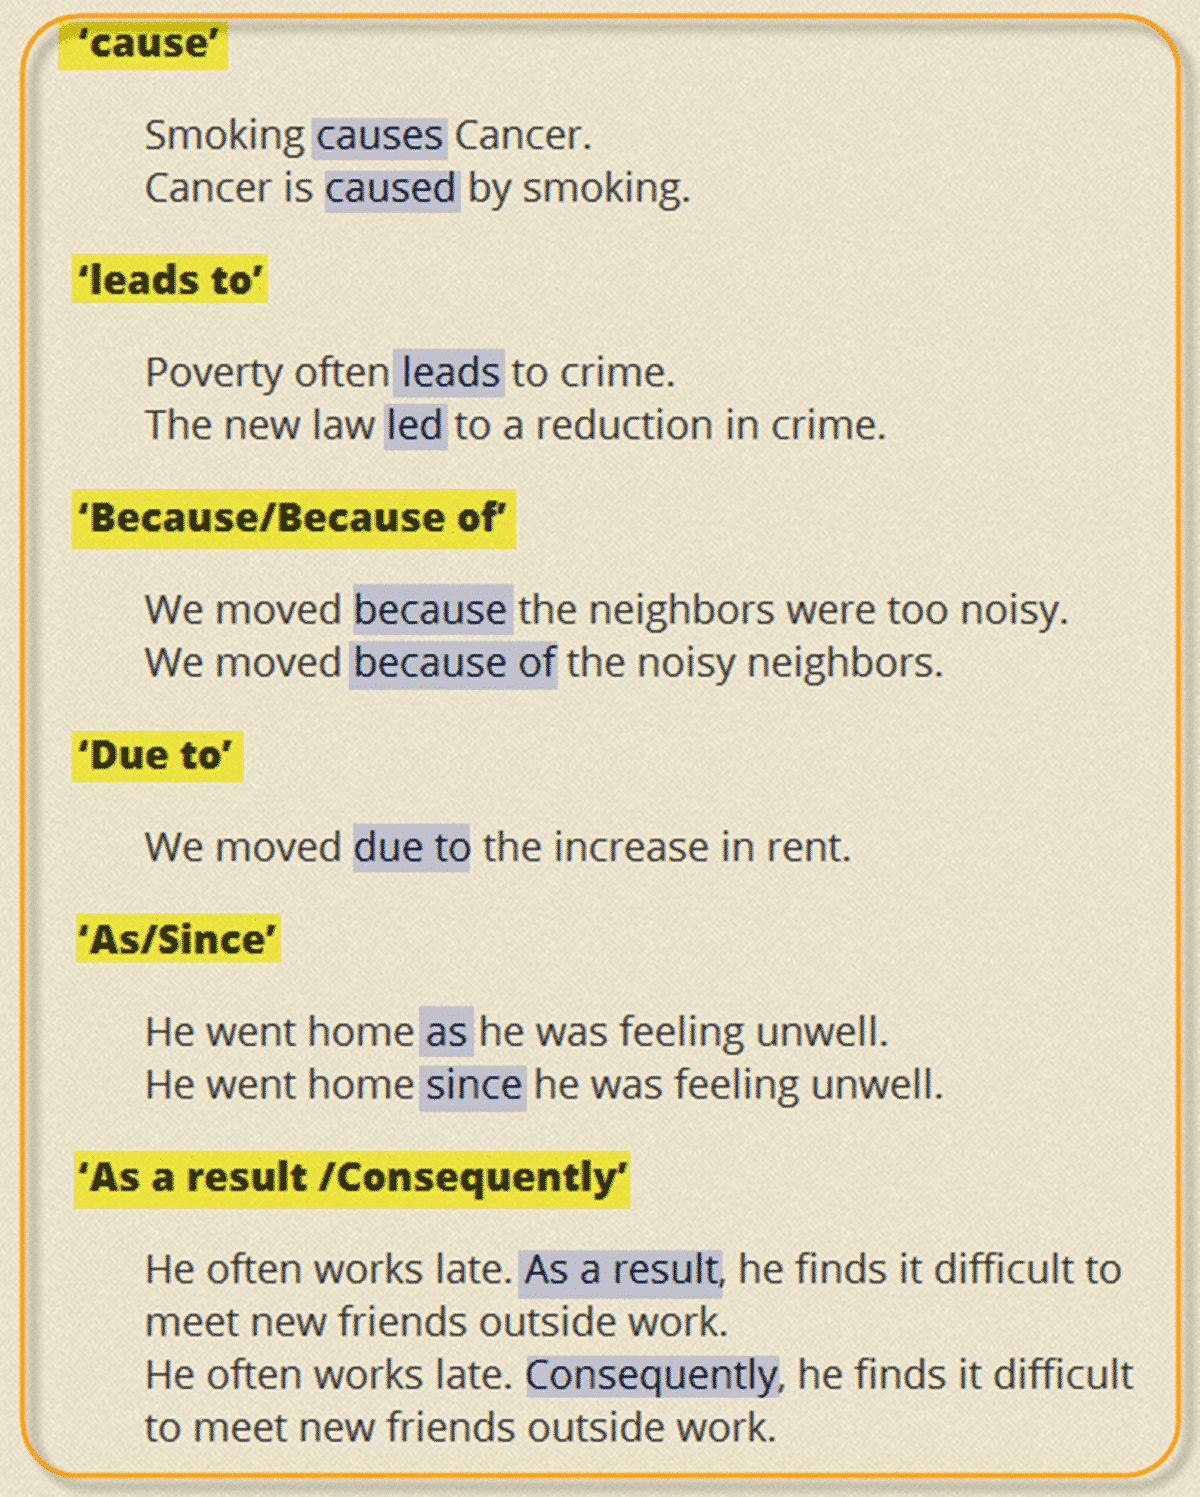 Frequently Used Linking Words And Phrases Reasons And